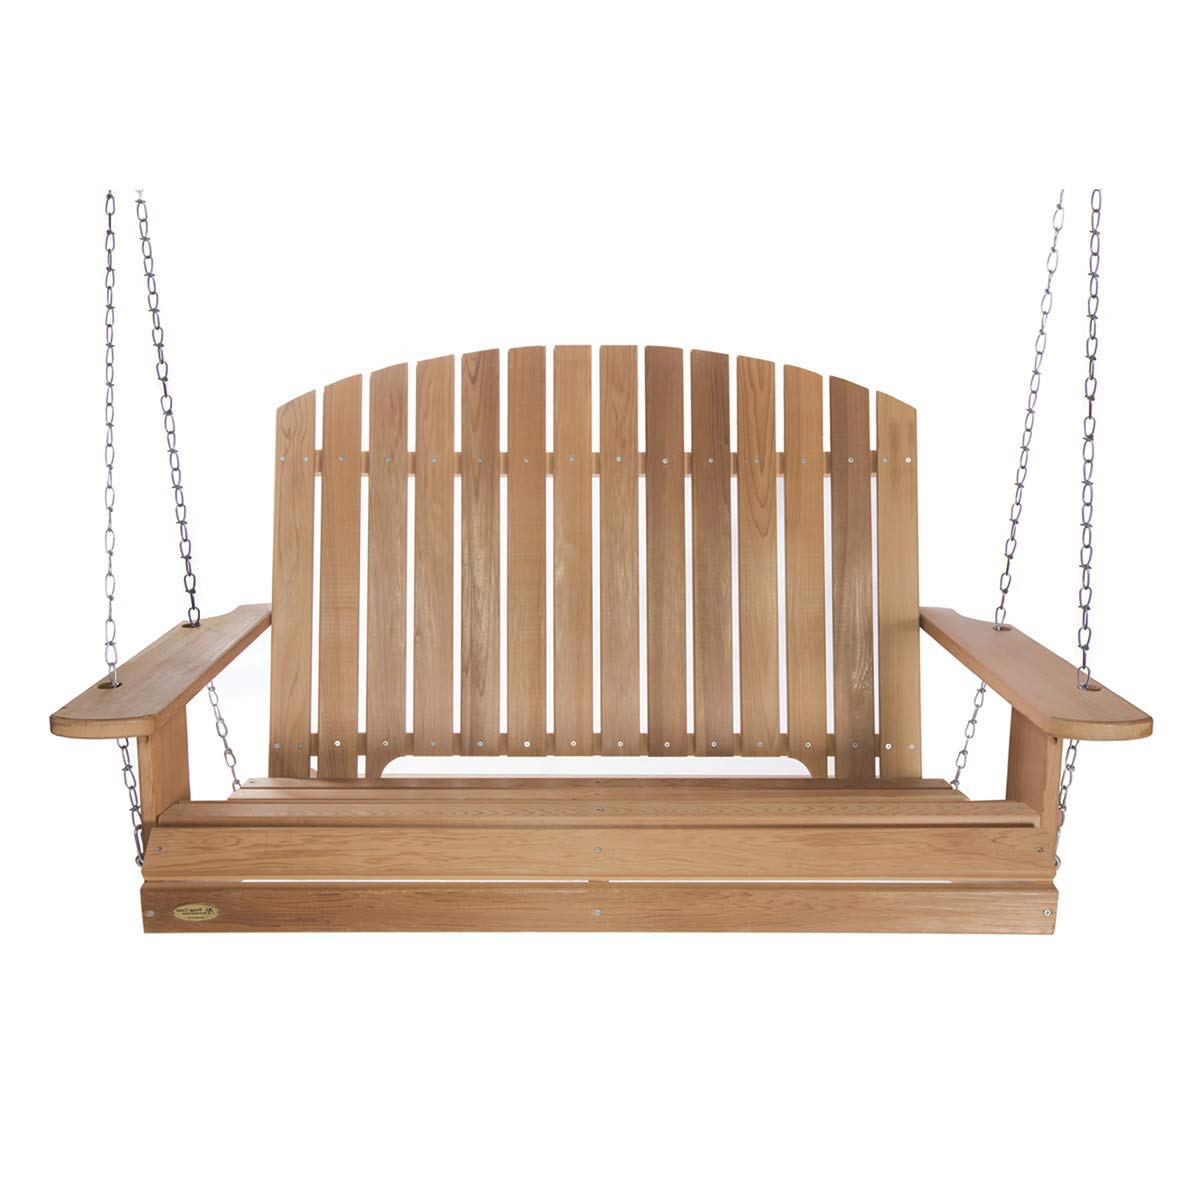 A4 Ft Cedar Pergola Swings For Most Up To Date All Things Cedar Ps60 Sw10 5 Ft Cedar Garden Swing With Comfort Springs (View 4 of 30)